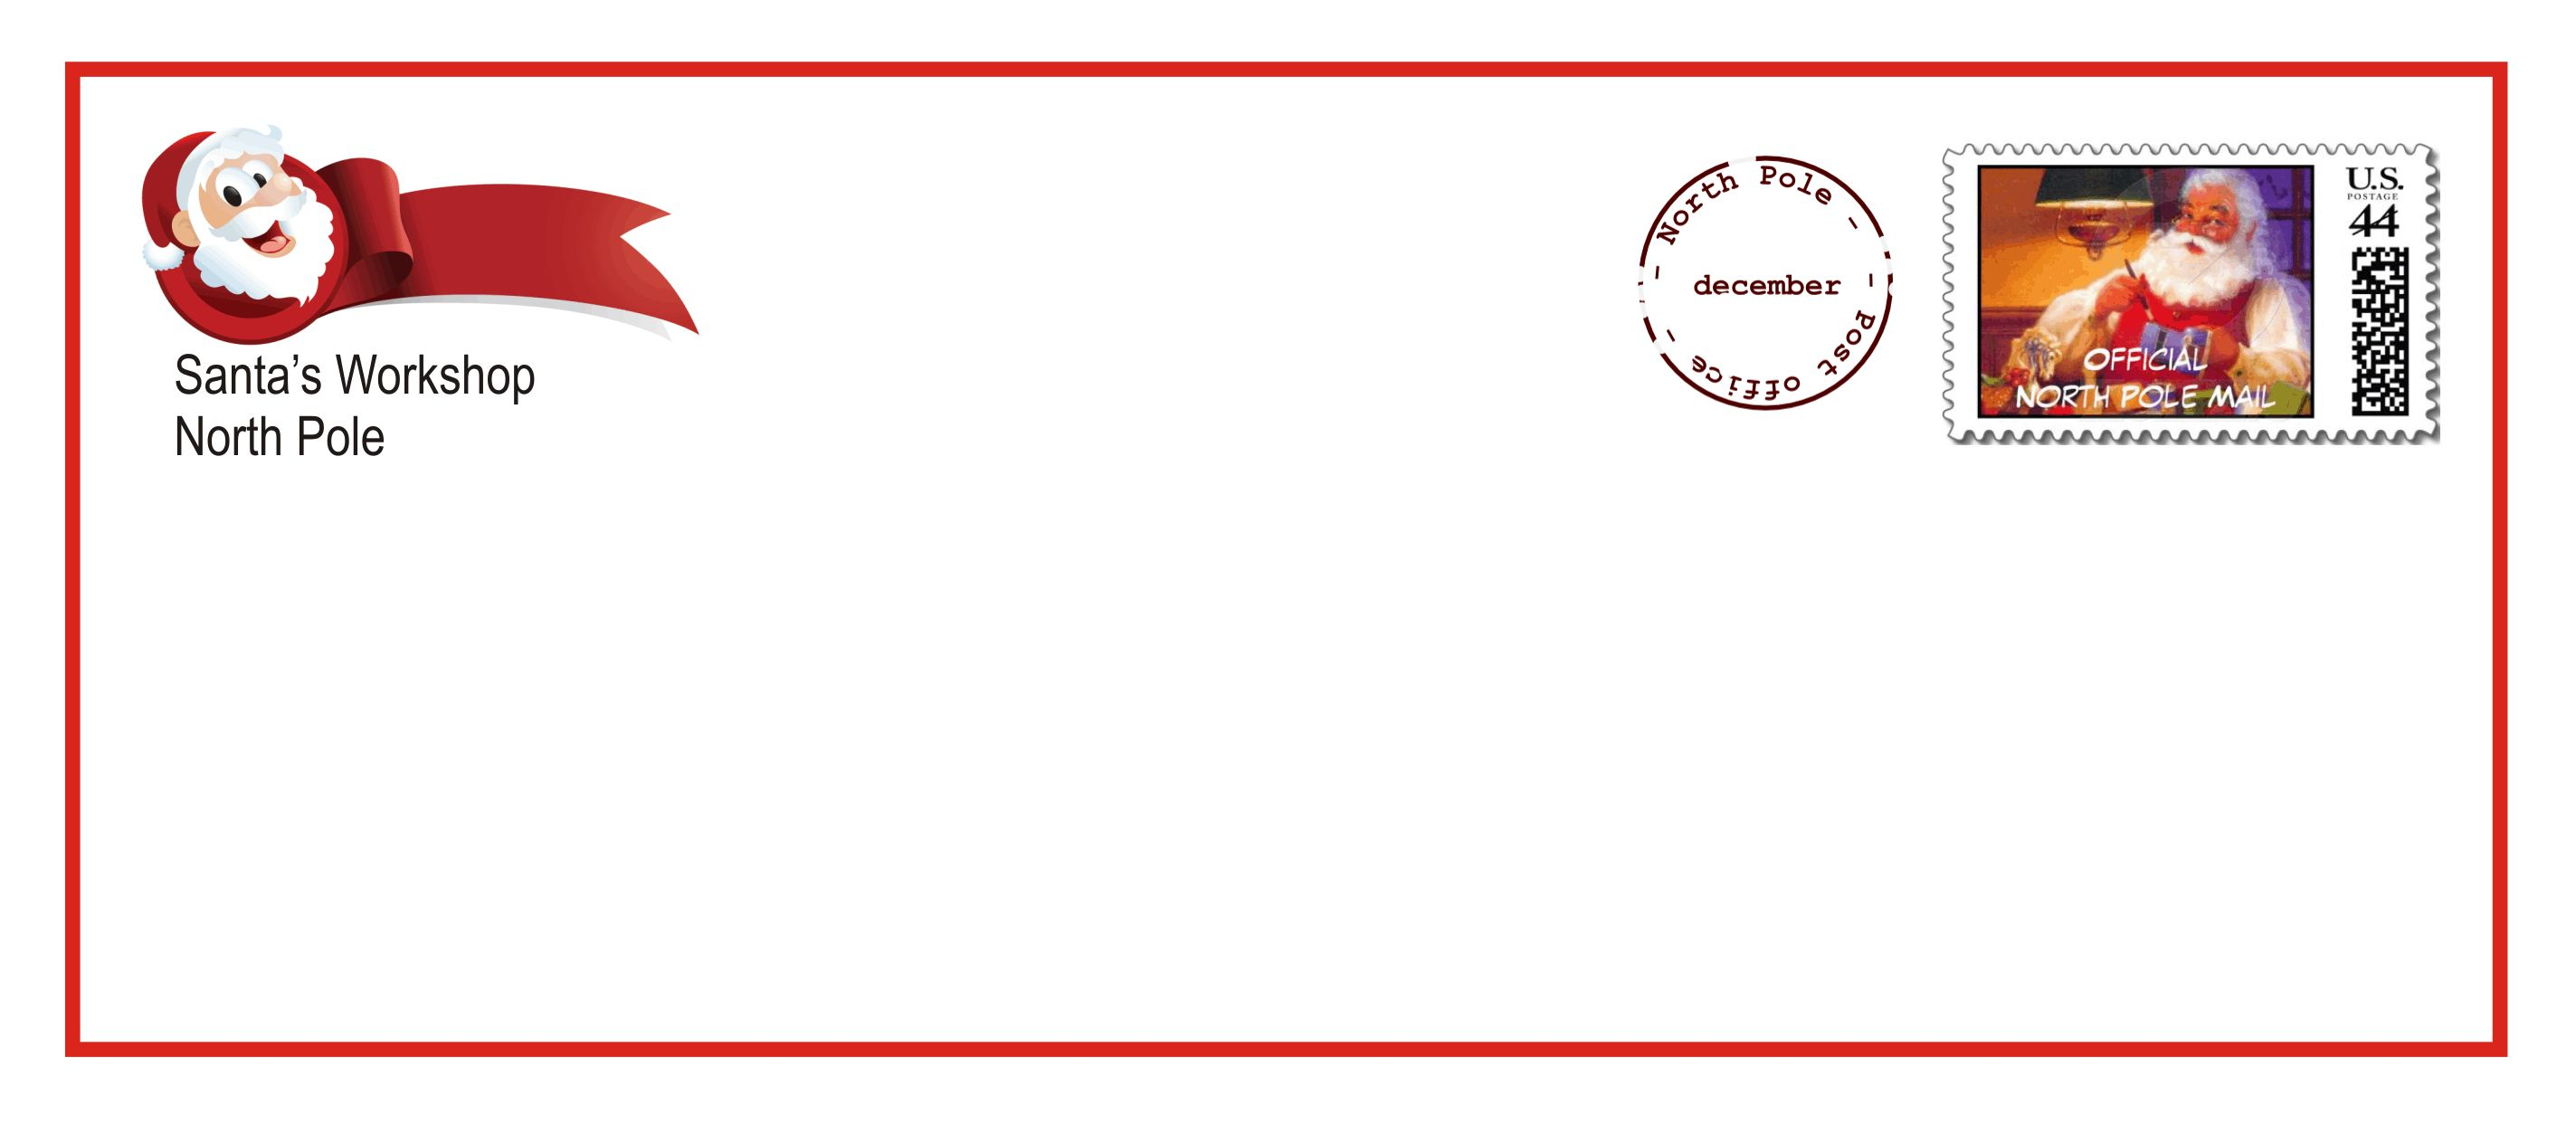 santa claus letter template example-Printable Santa letter envelopes that e with the upgraded letter and Nice List certificate on Free Letter from Santa Claus 4-o